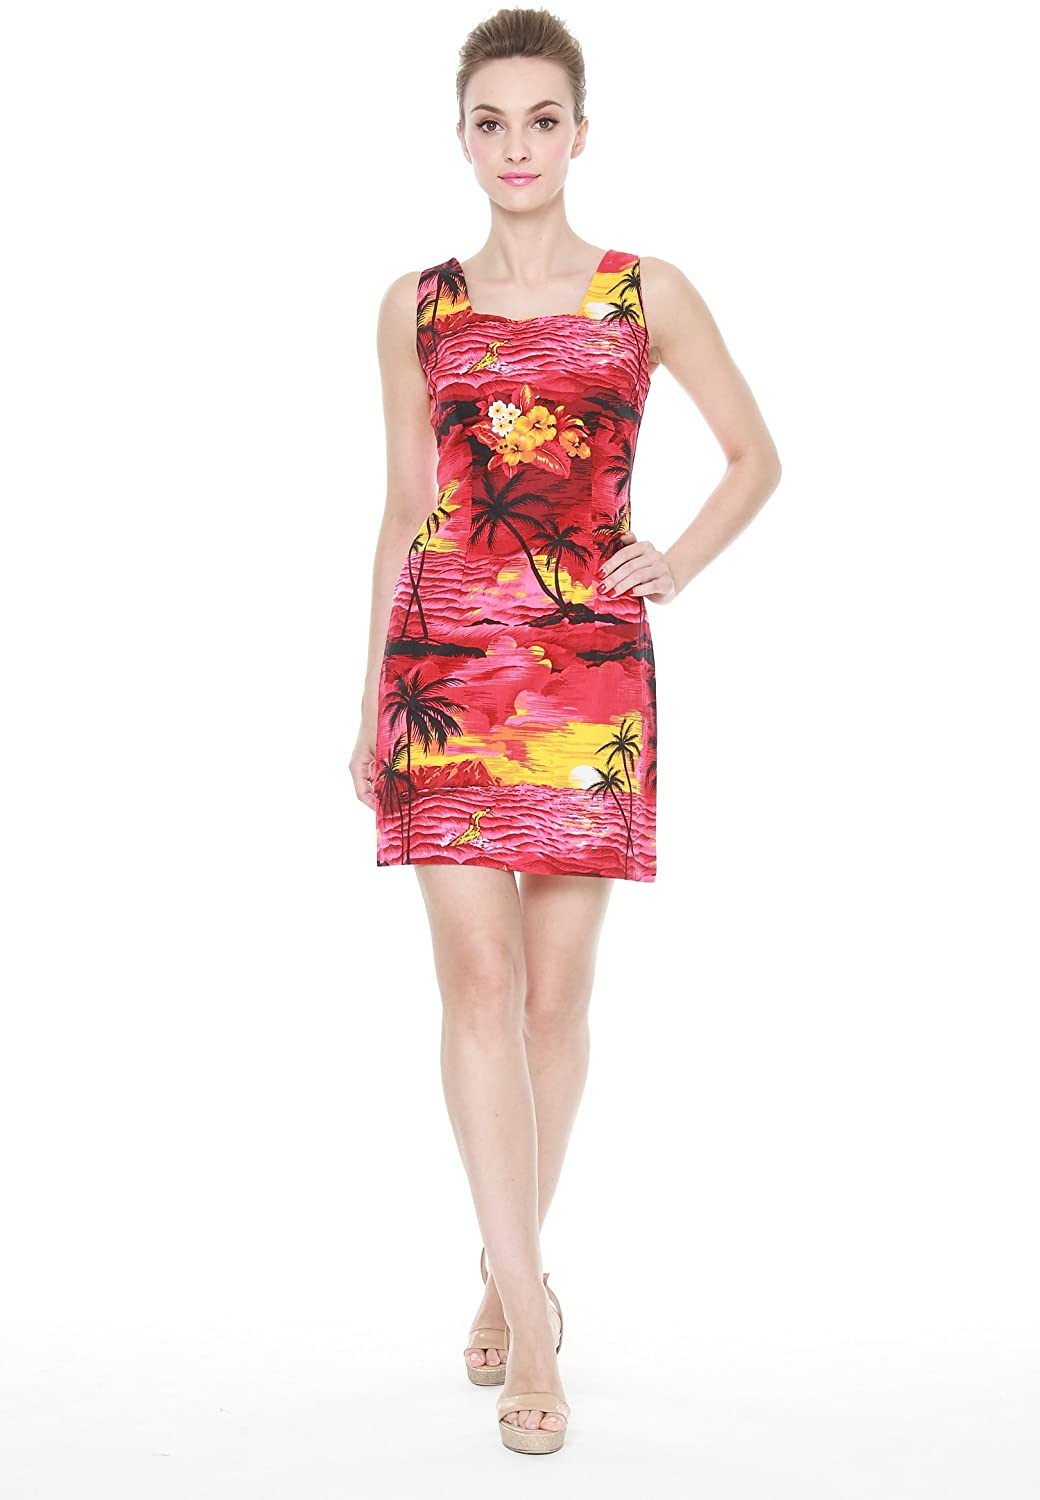 Plam Wave Women's Hawaiian Luau Tank Dress in Sunset Red Print